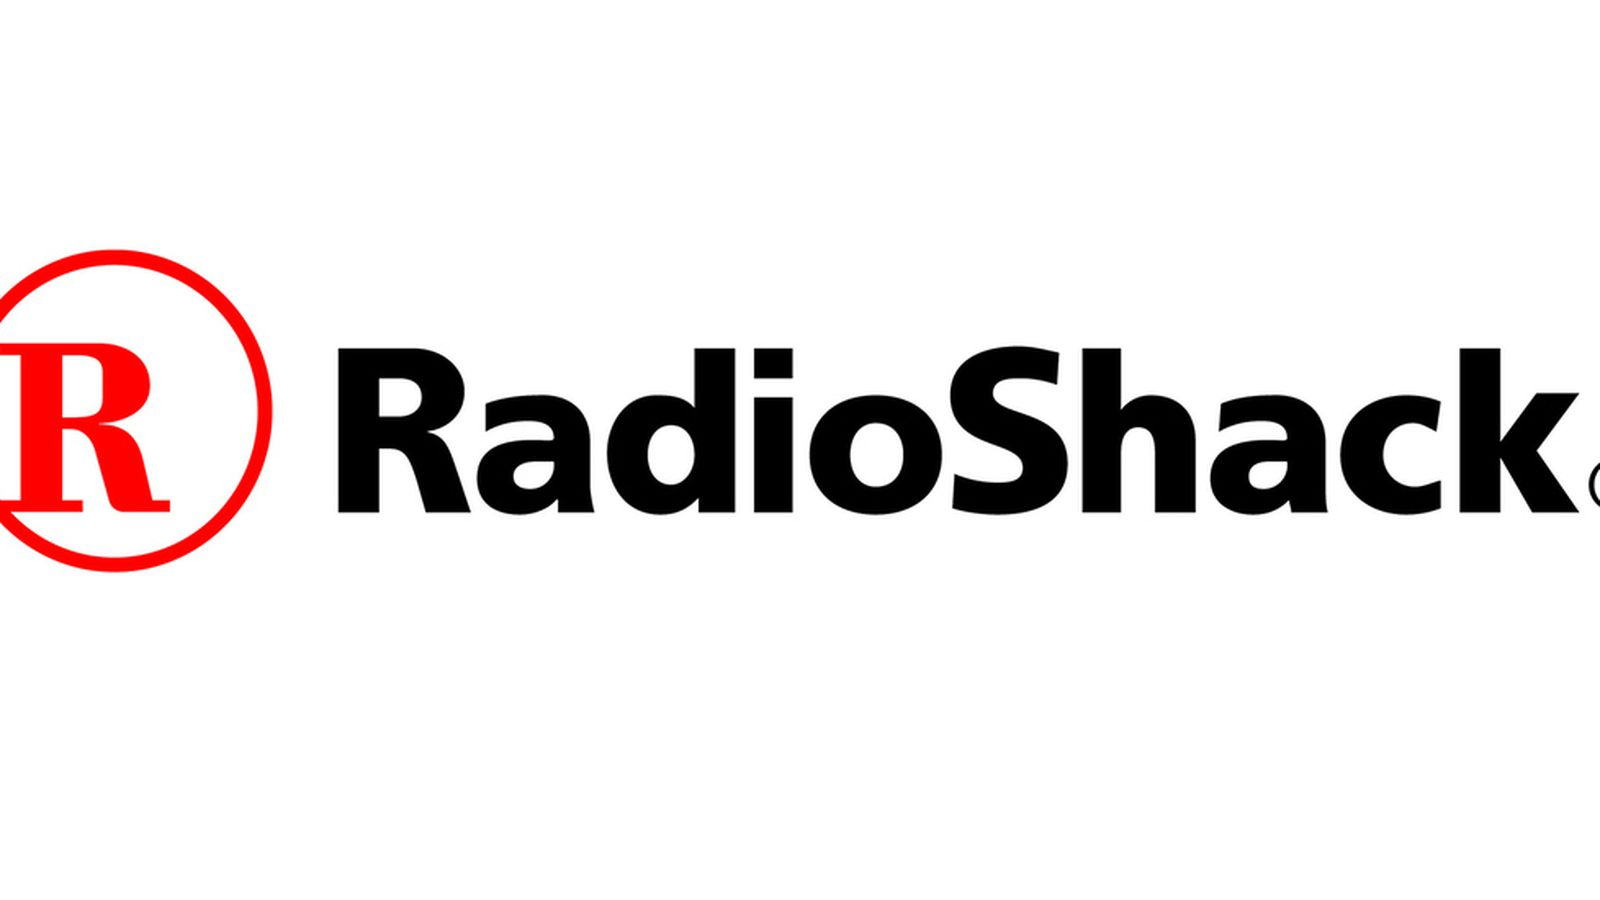 RadioShack announces No Contract Wireless powered by